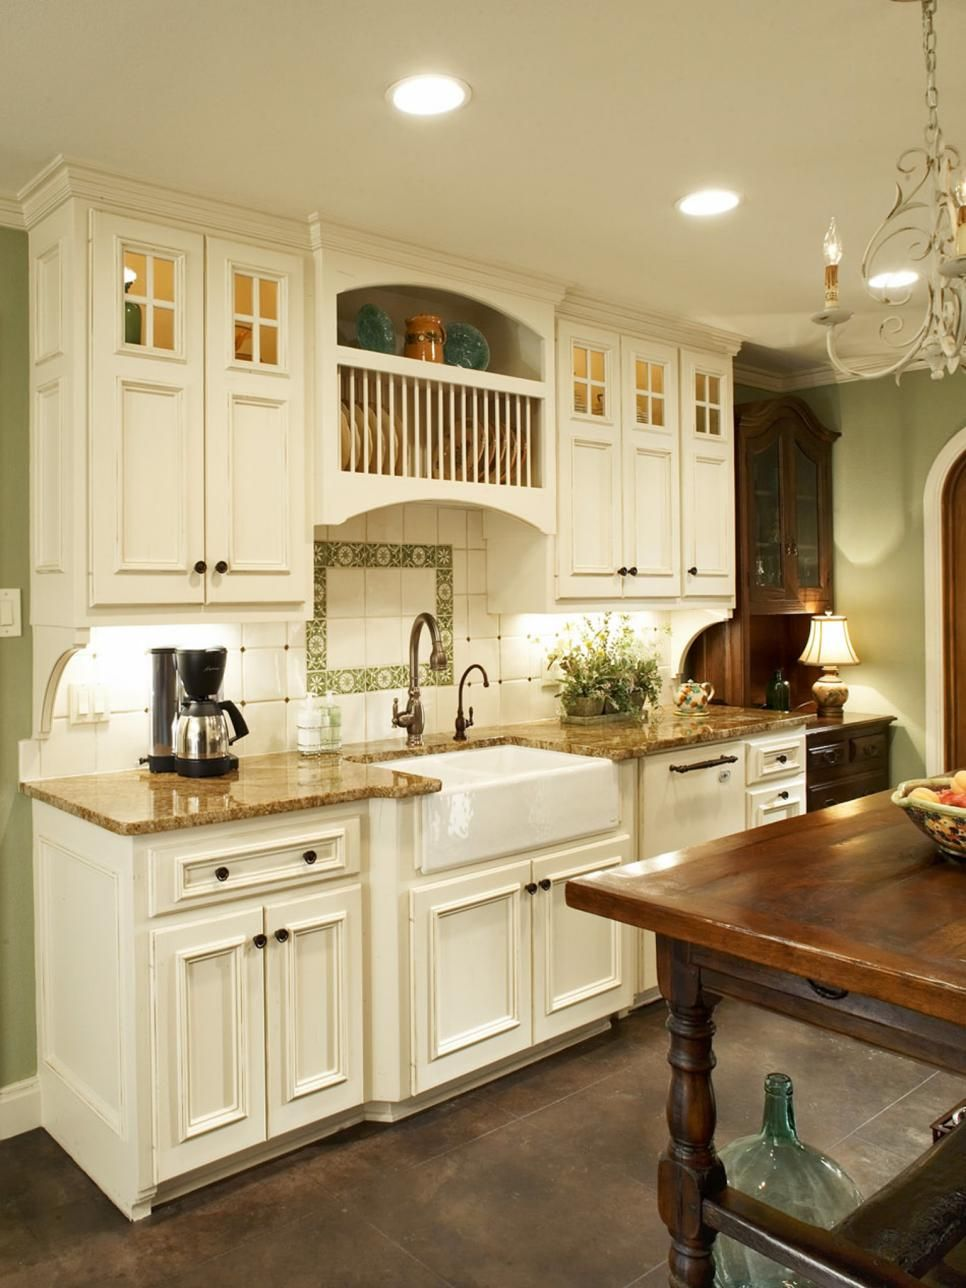 From 70s Disaster To French Country Masterpiece Country Kitchen Cabinets French Country Kitchen Cabinets Cottage Kitchen Cabinets